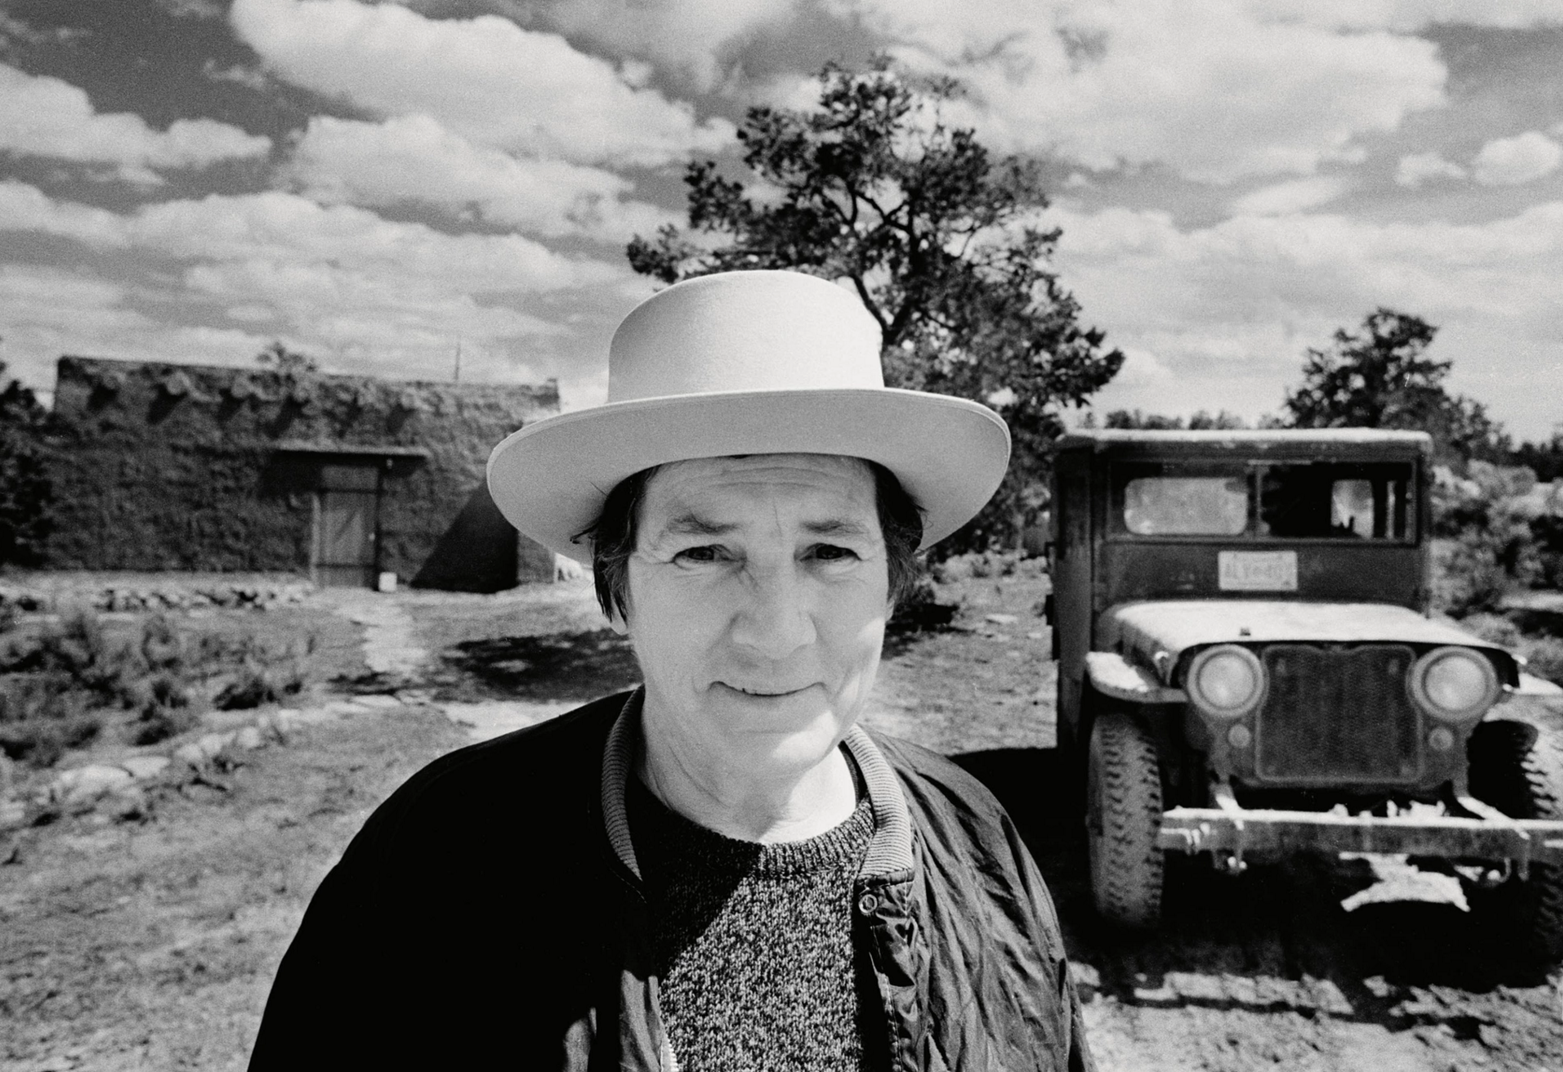 The Guardian shares a photo of Agnes Martin in New Mexicao